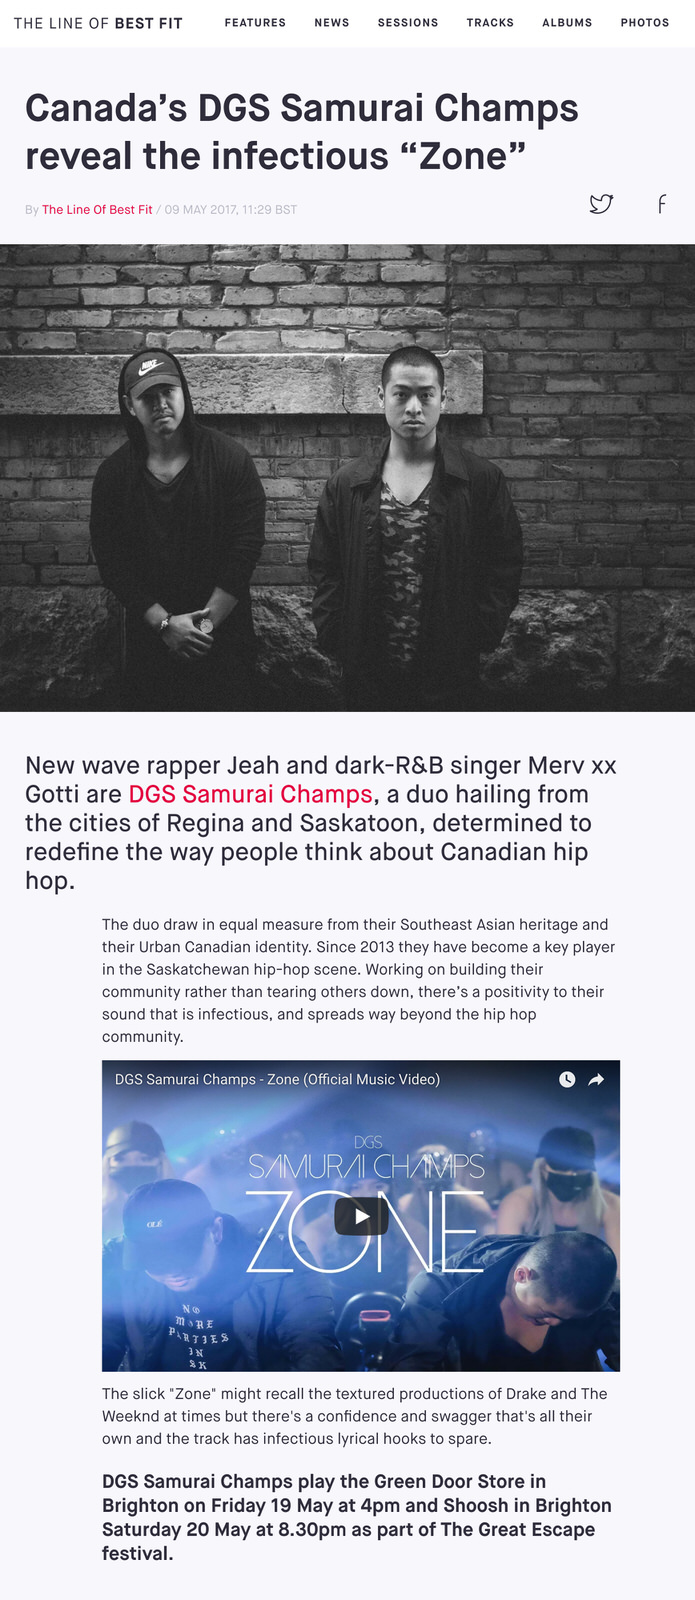 Canada's DGS Samurai Champs reveal th_ - https___www.thelineofbestfit.com_n-1.jpg